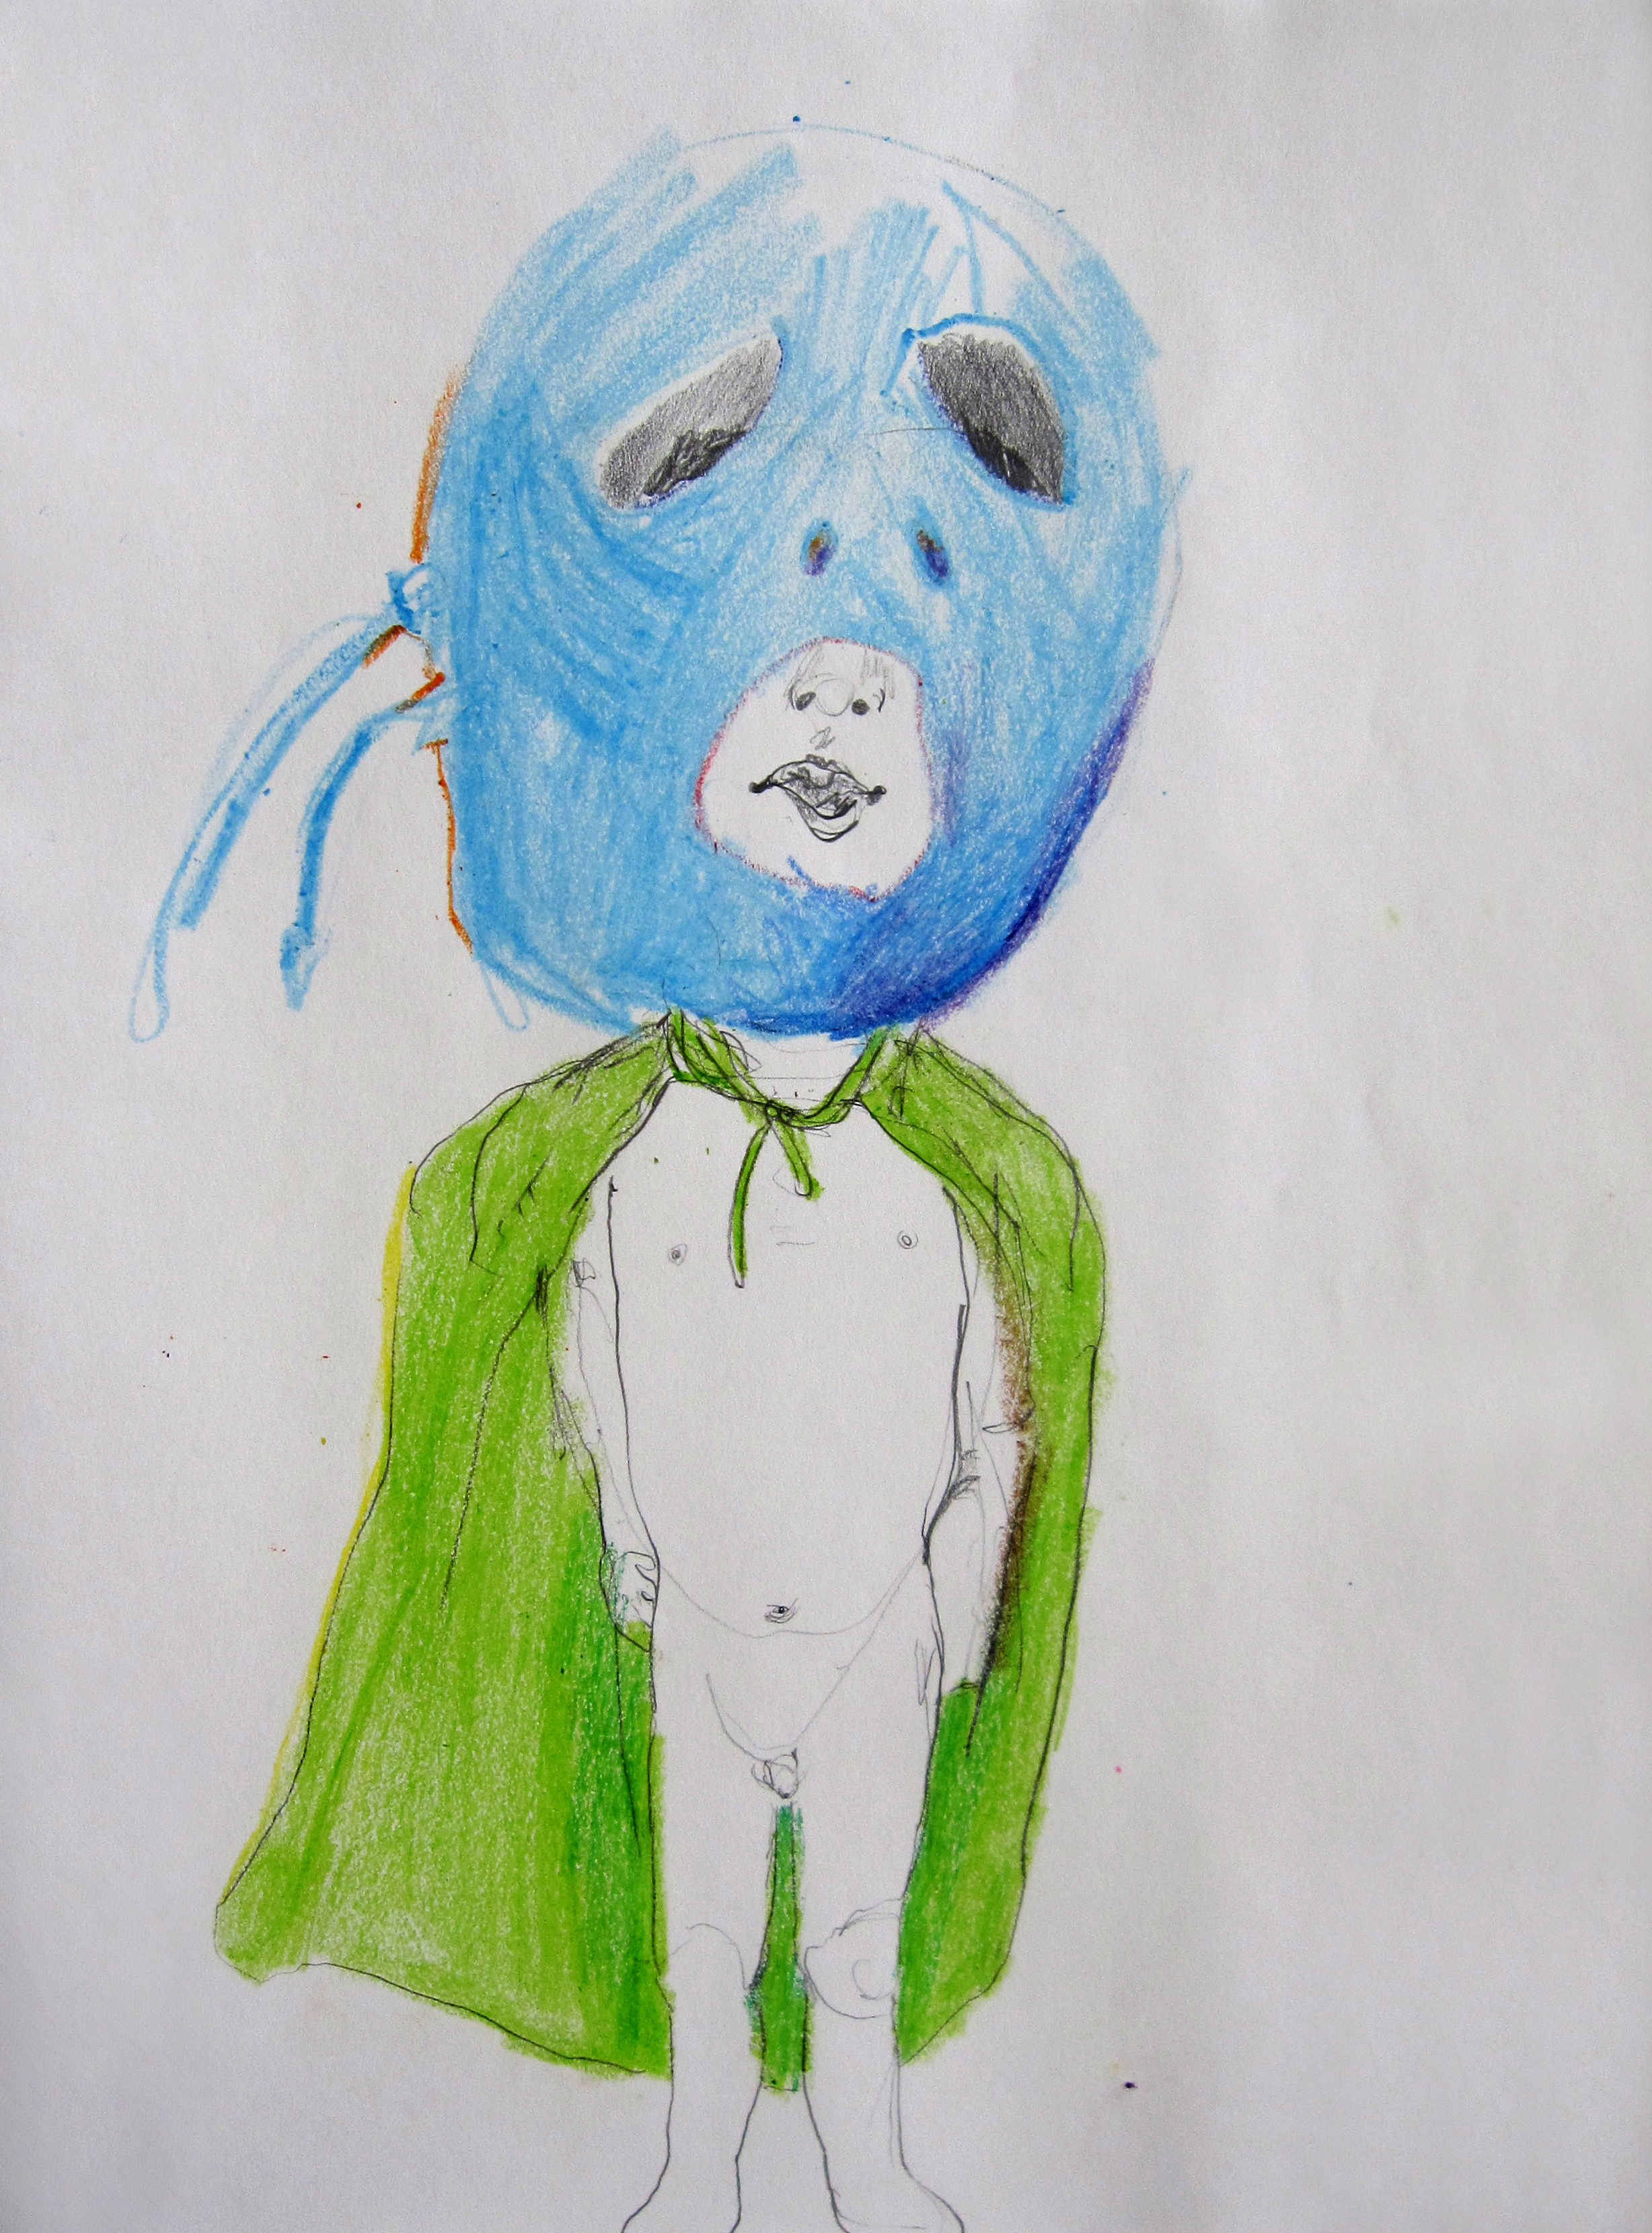 Lucha 2, 2008, Crayon on paper, 14 X11 in.